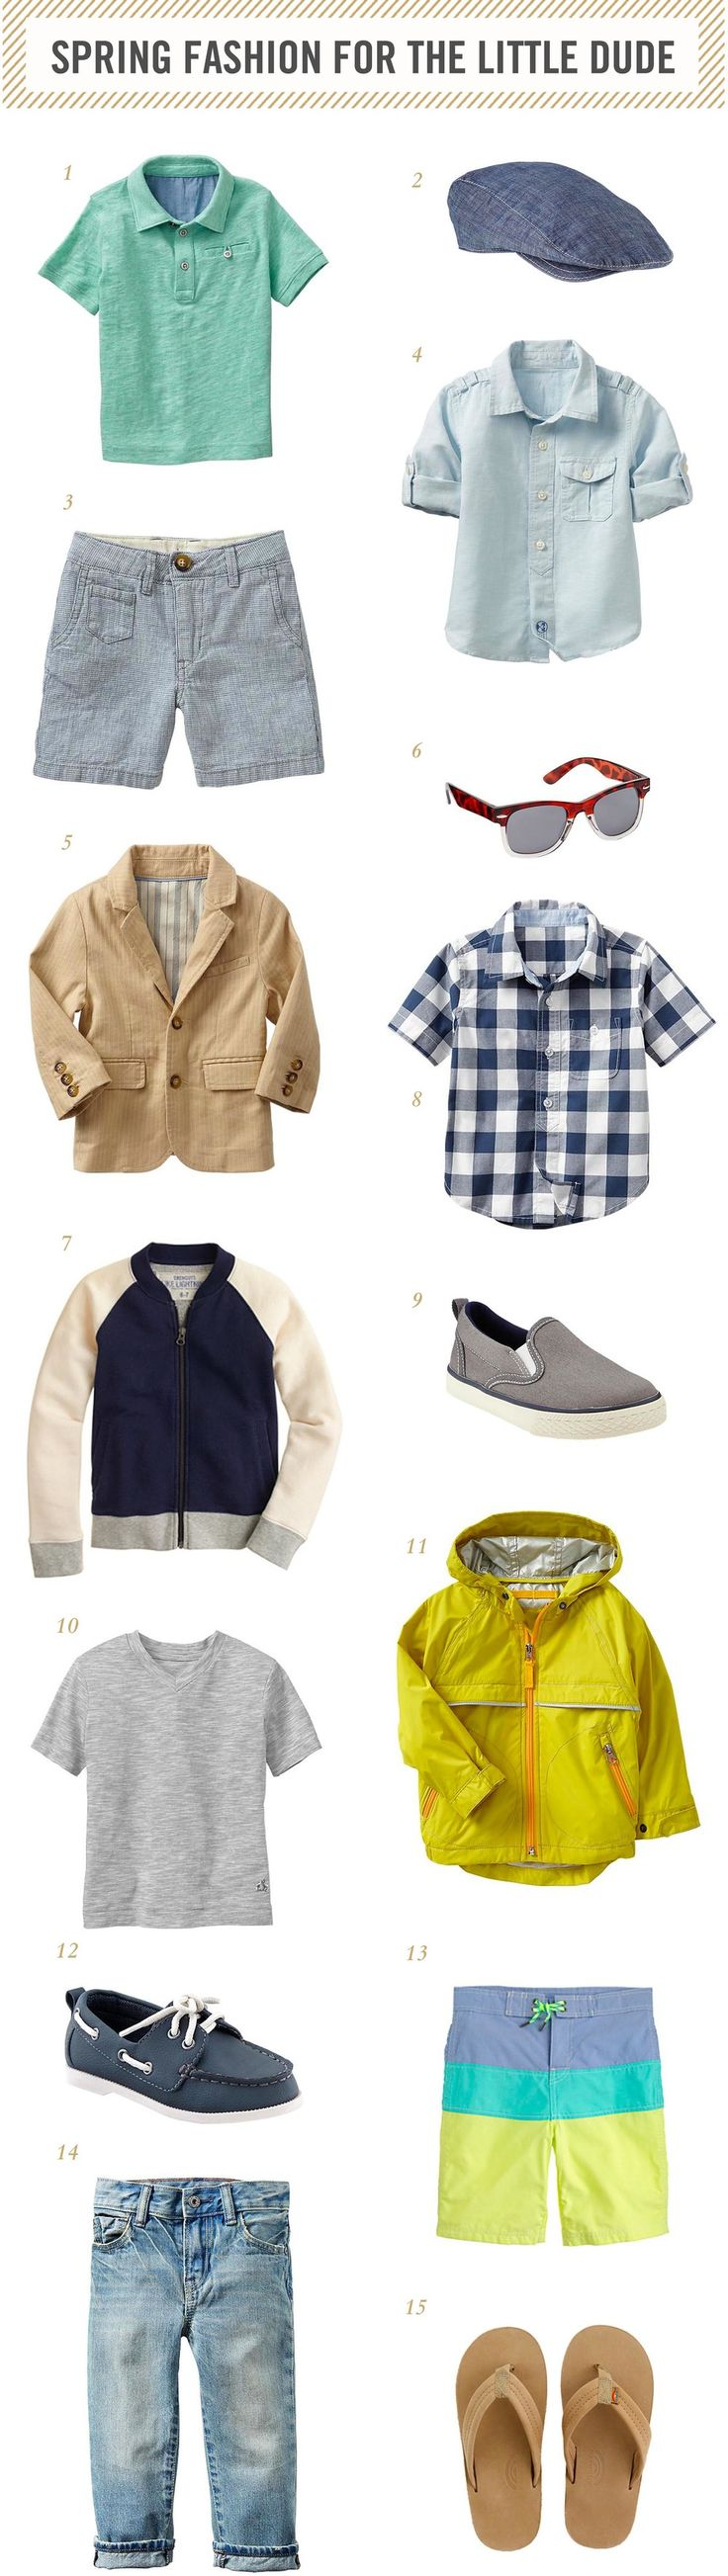 Since I posted my spring fashion picks for little girls, I thought I better do a spring fashion post for little boys too and really, I just have a thing for little guys clothes.  I just think they are so darn cute.  Maybe it's the tomboy/preppy side of me that loves the styles for little boys